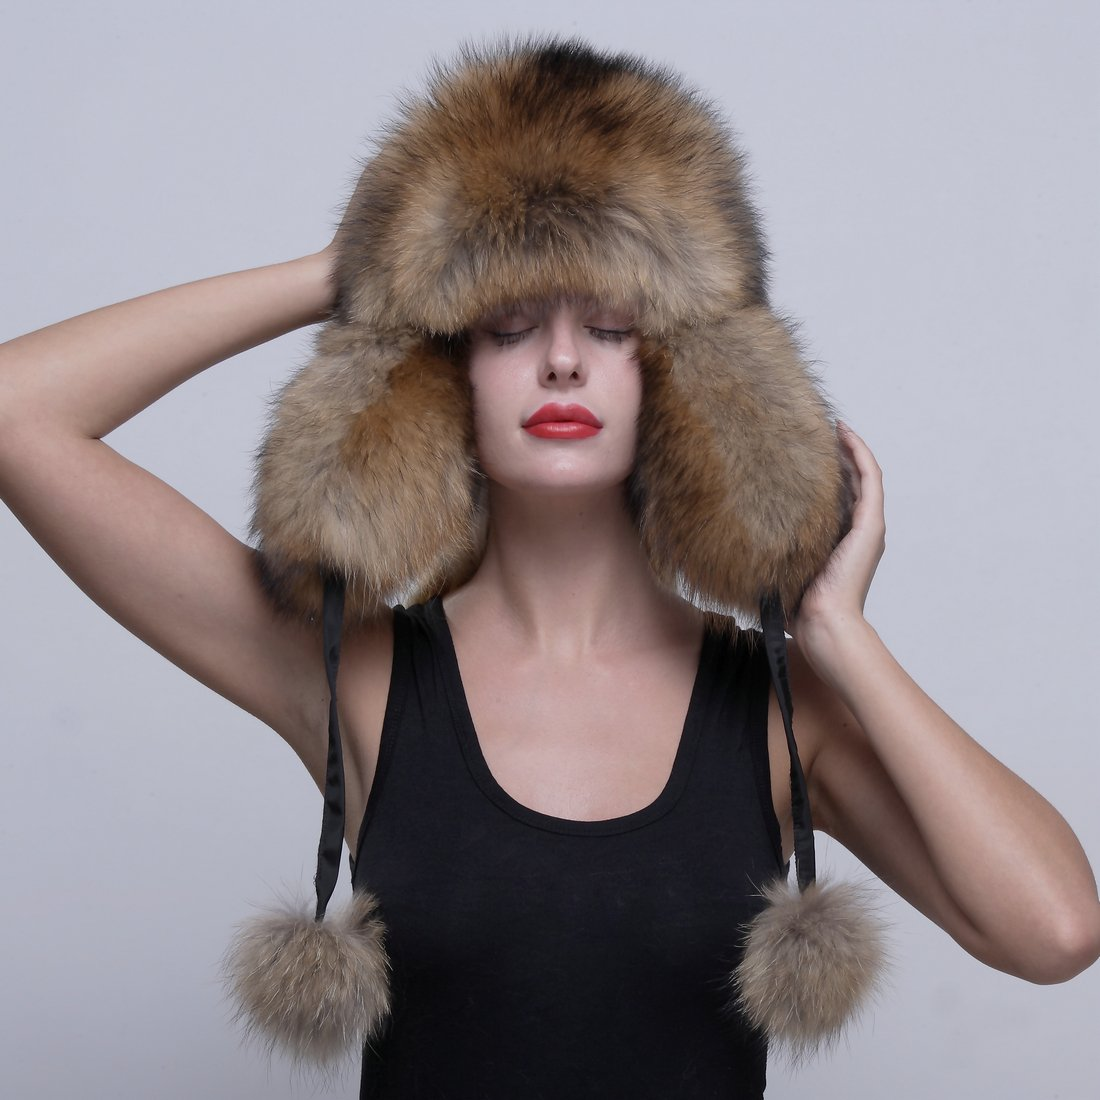 URSFUR Genuine Raccoon Fur Russian Ushanka Trapper Hat Cap with Fur Ball Pompom by URSFUR (Image #5)